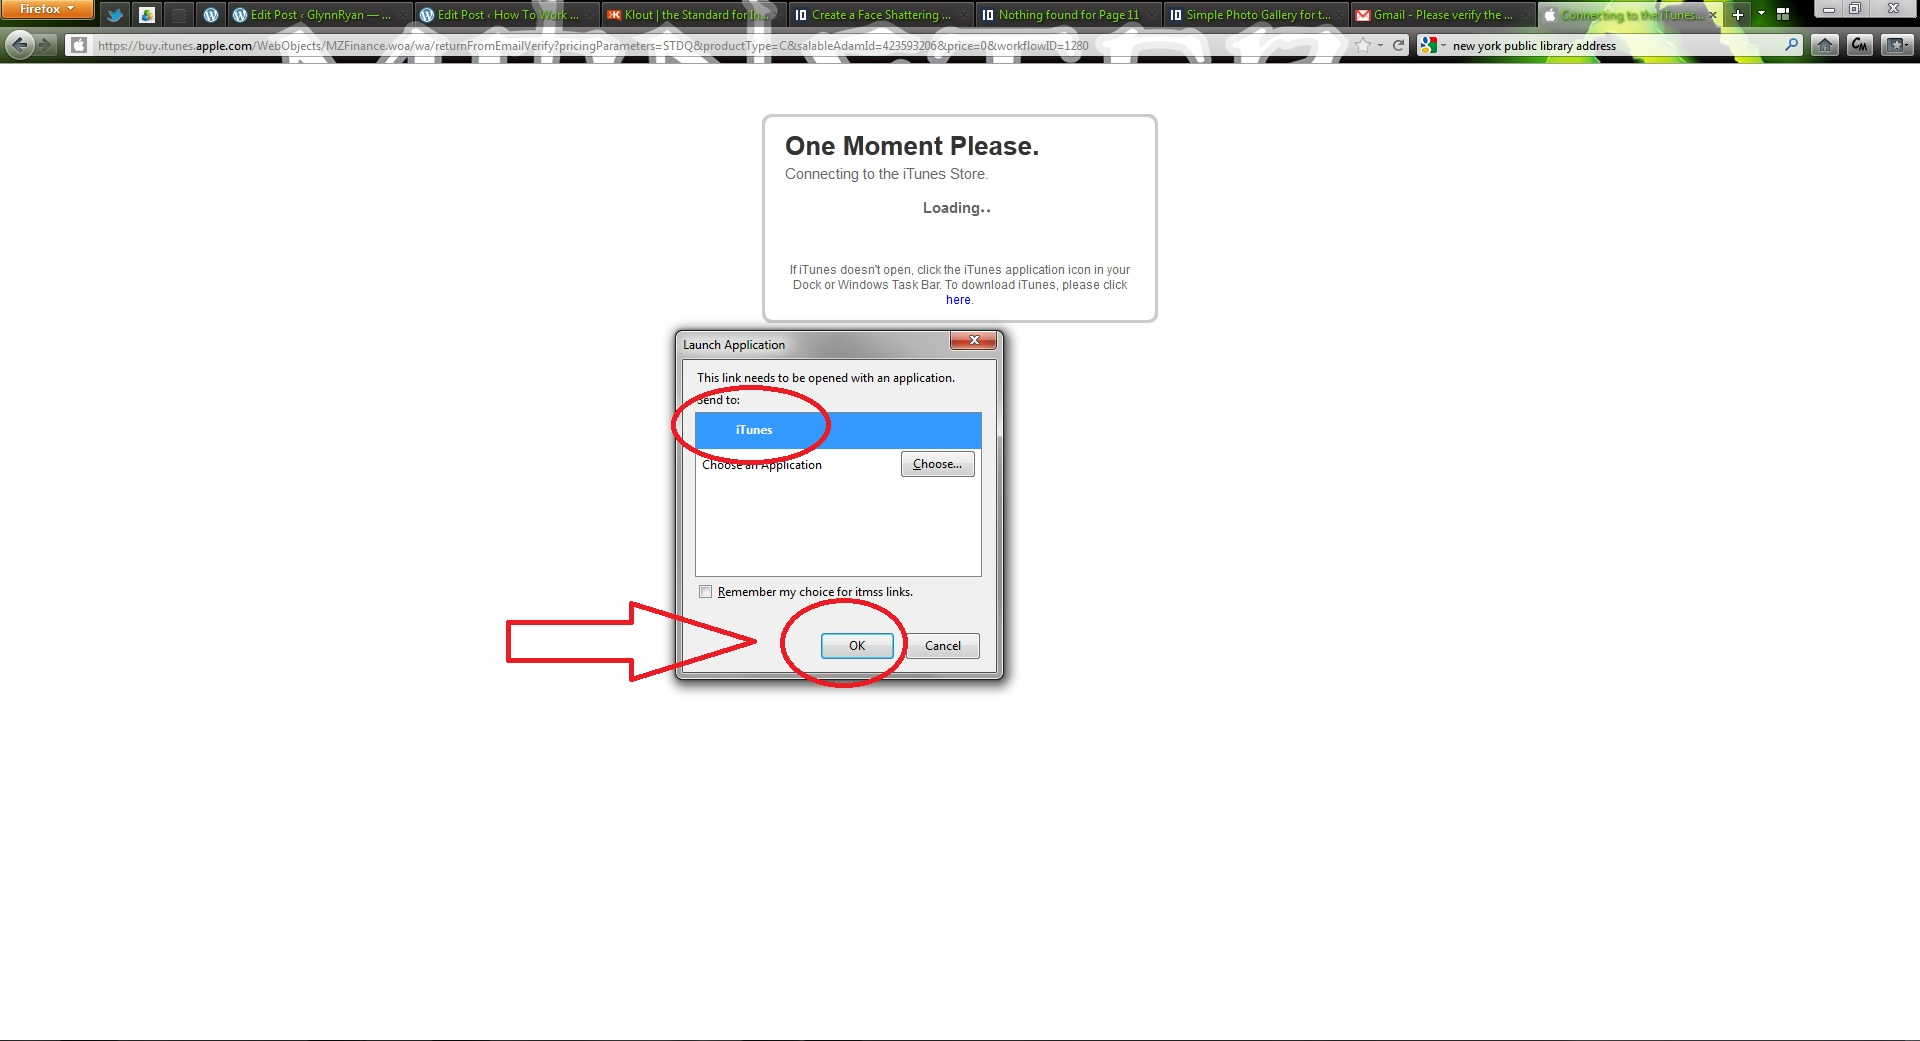 in itunes in on my device how to delete files